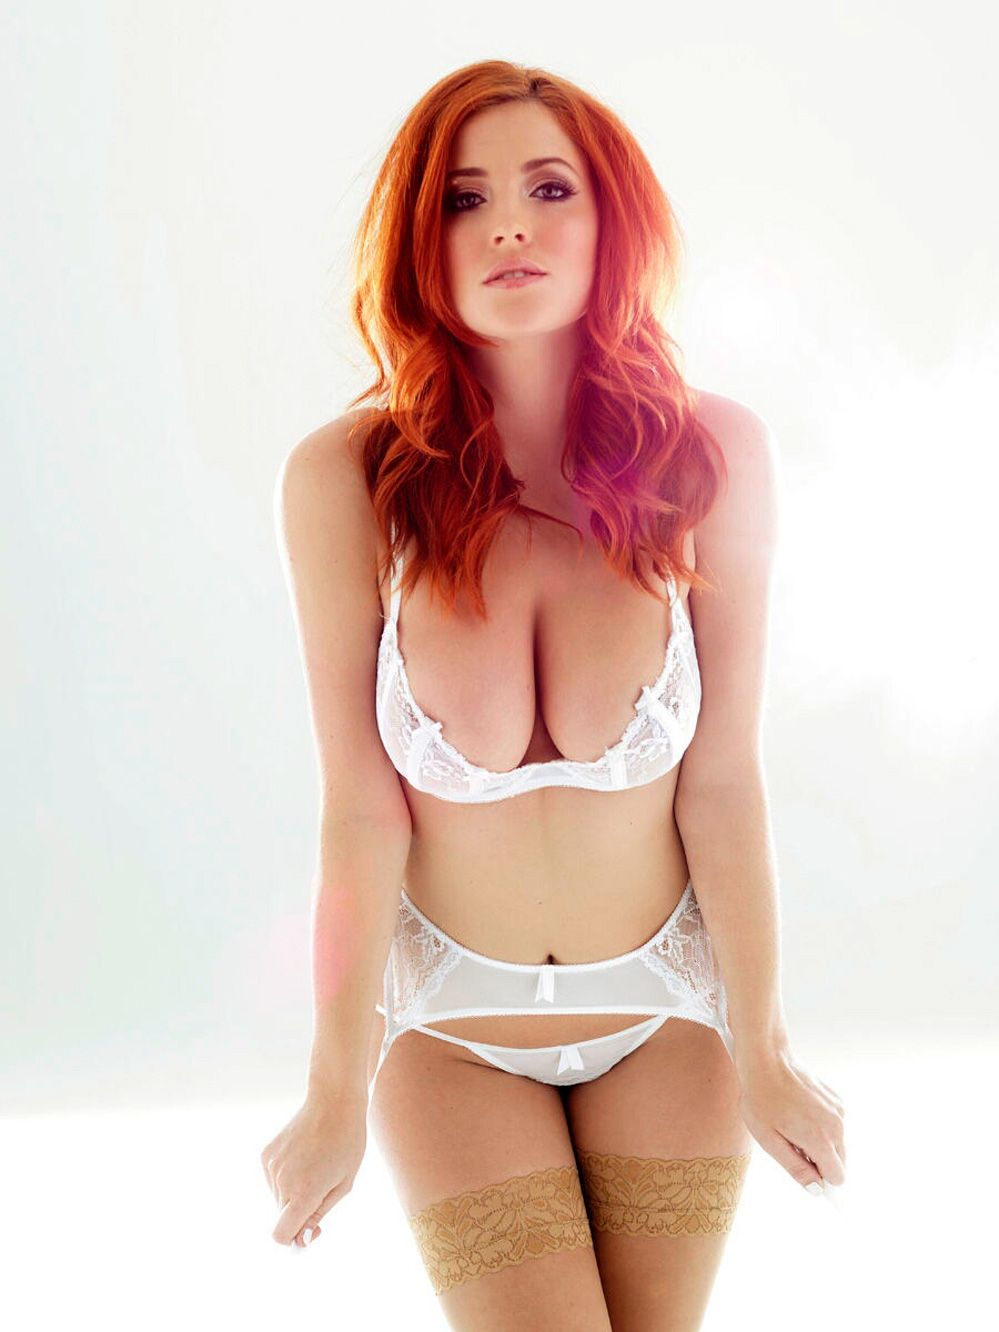 Redhead of the week nude